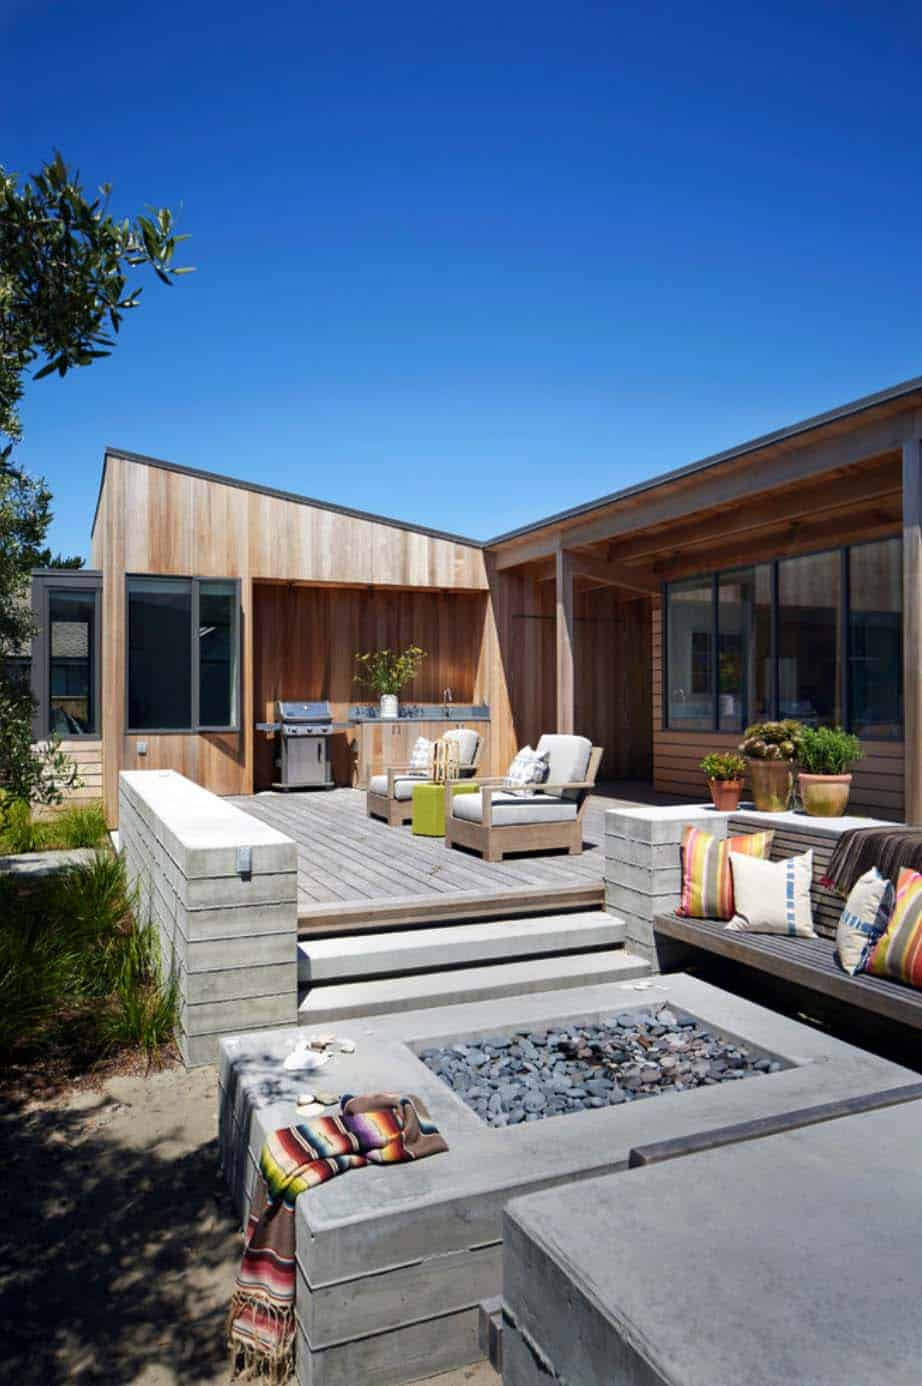 stinson-beach-lagoon-residence-turnbull-griffin-haesloop-06-1-kindesign